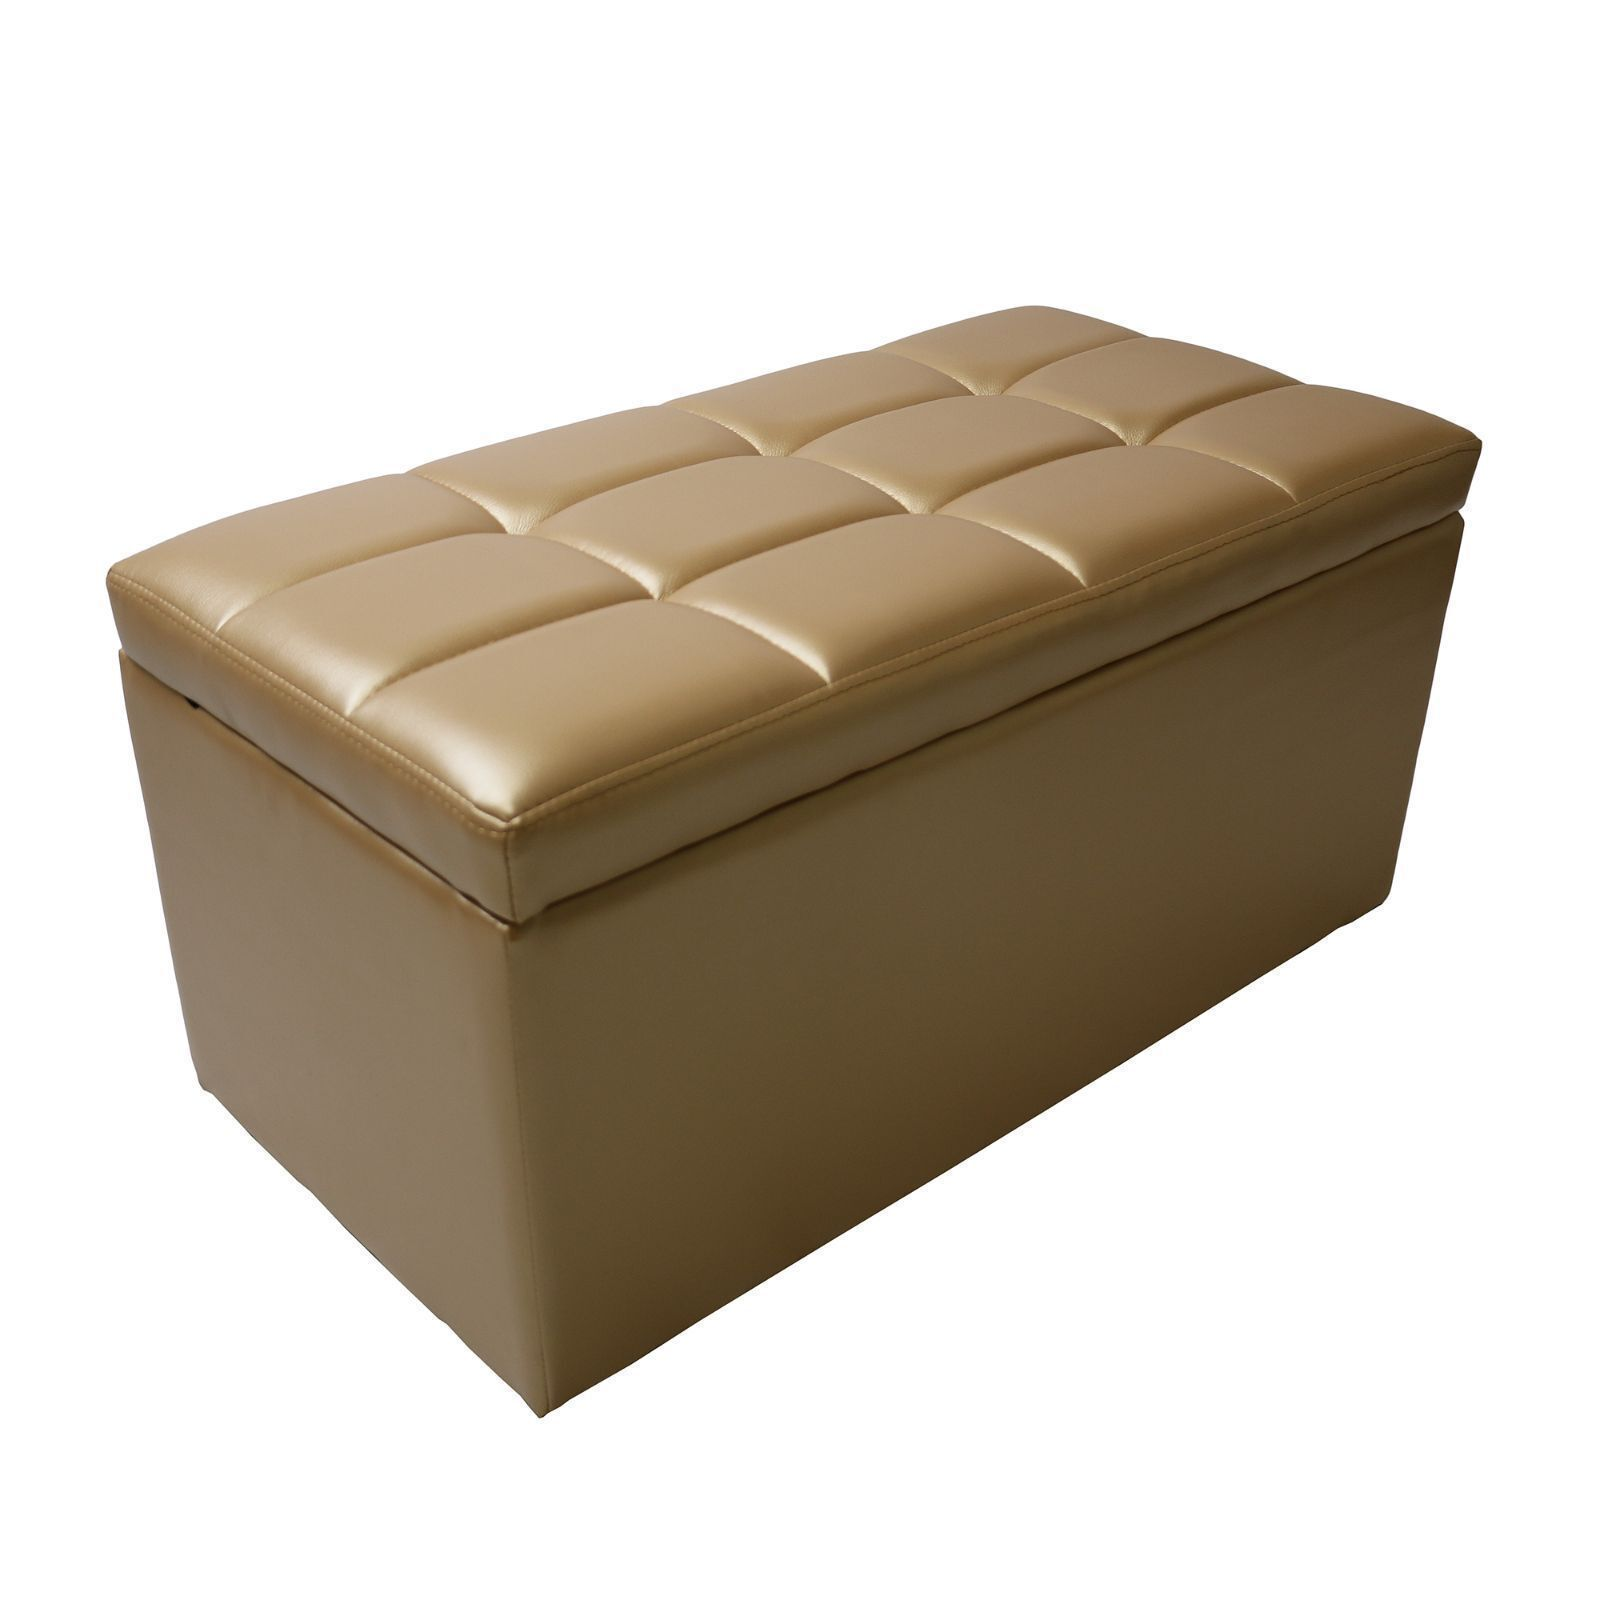 Storage Benches And Ottomans: Unfold Leather Storage Ottoman Bench Footstool Seat